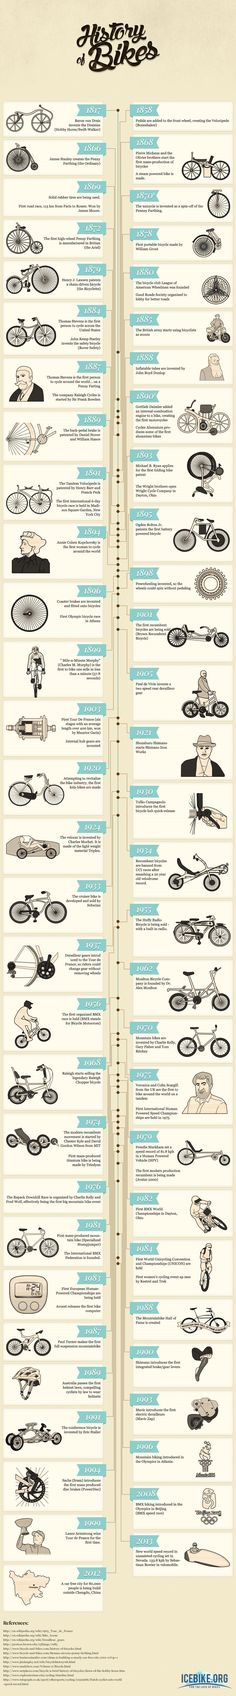 The History of Bikes